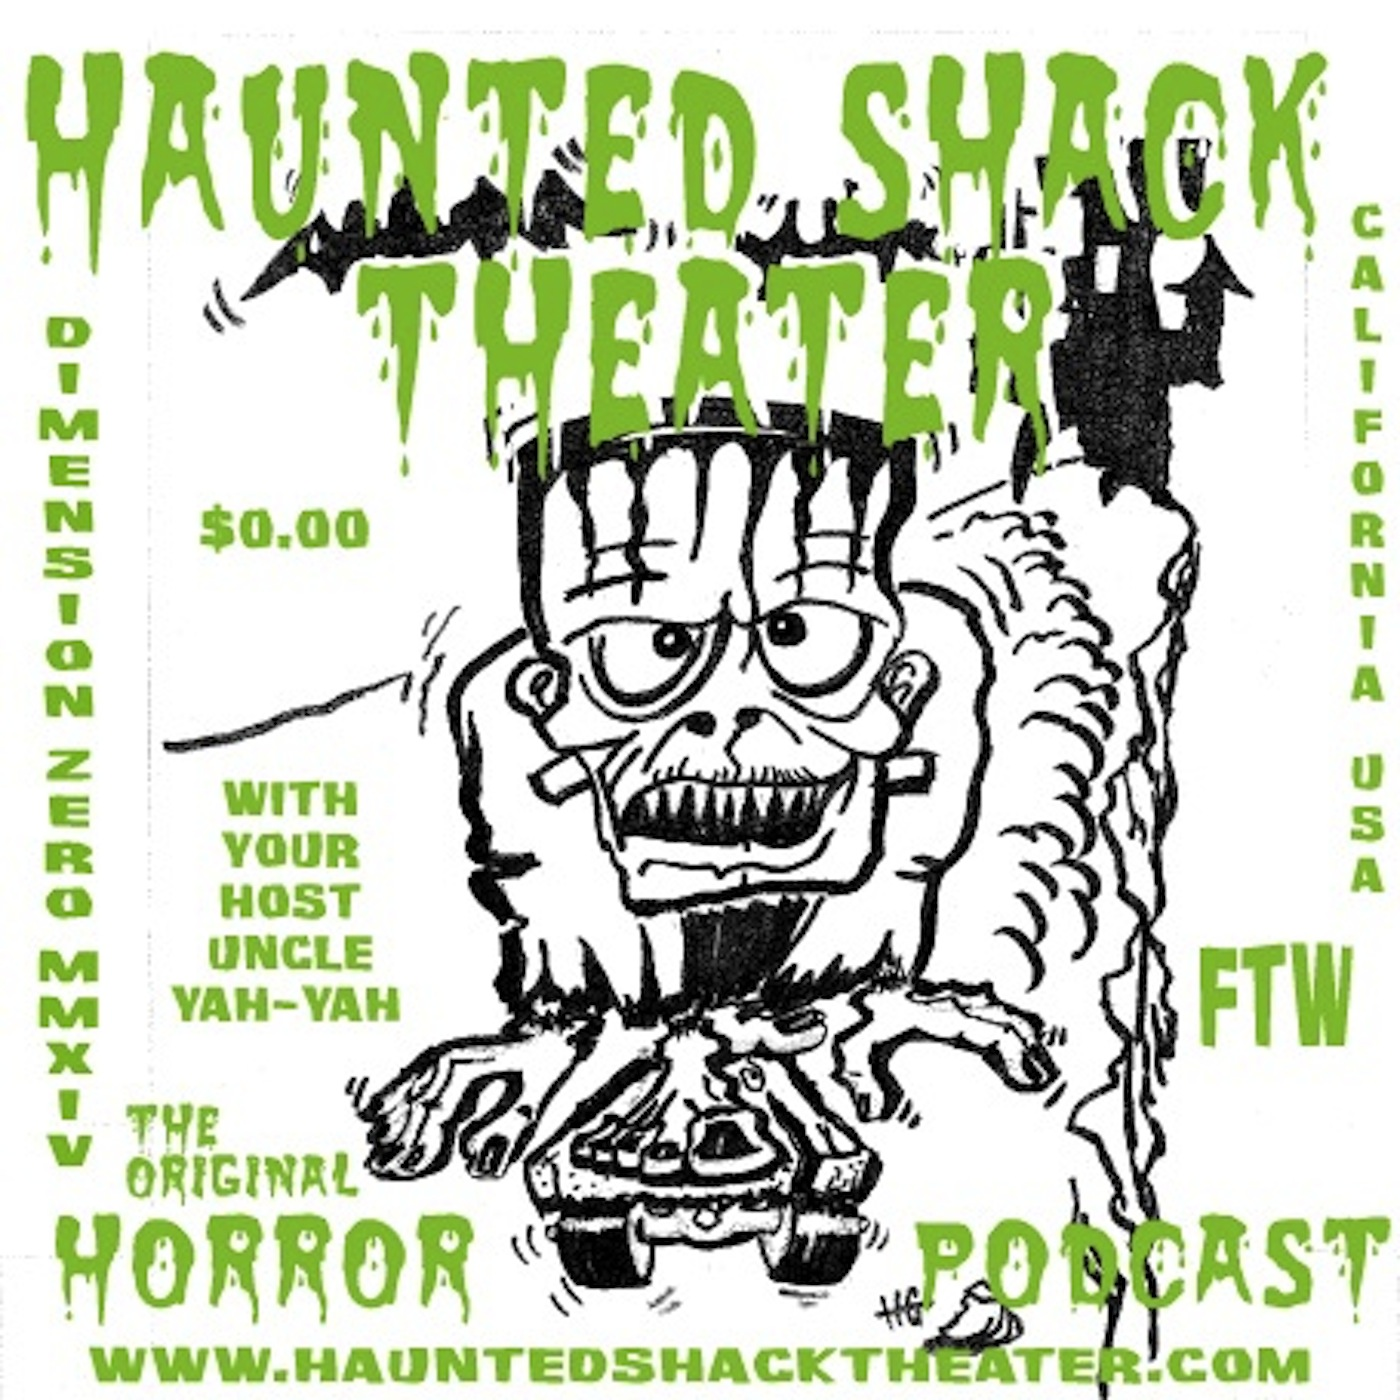 Podcast – Haunted Shack Theater (mp3)